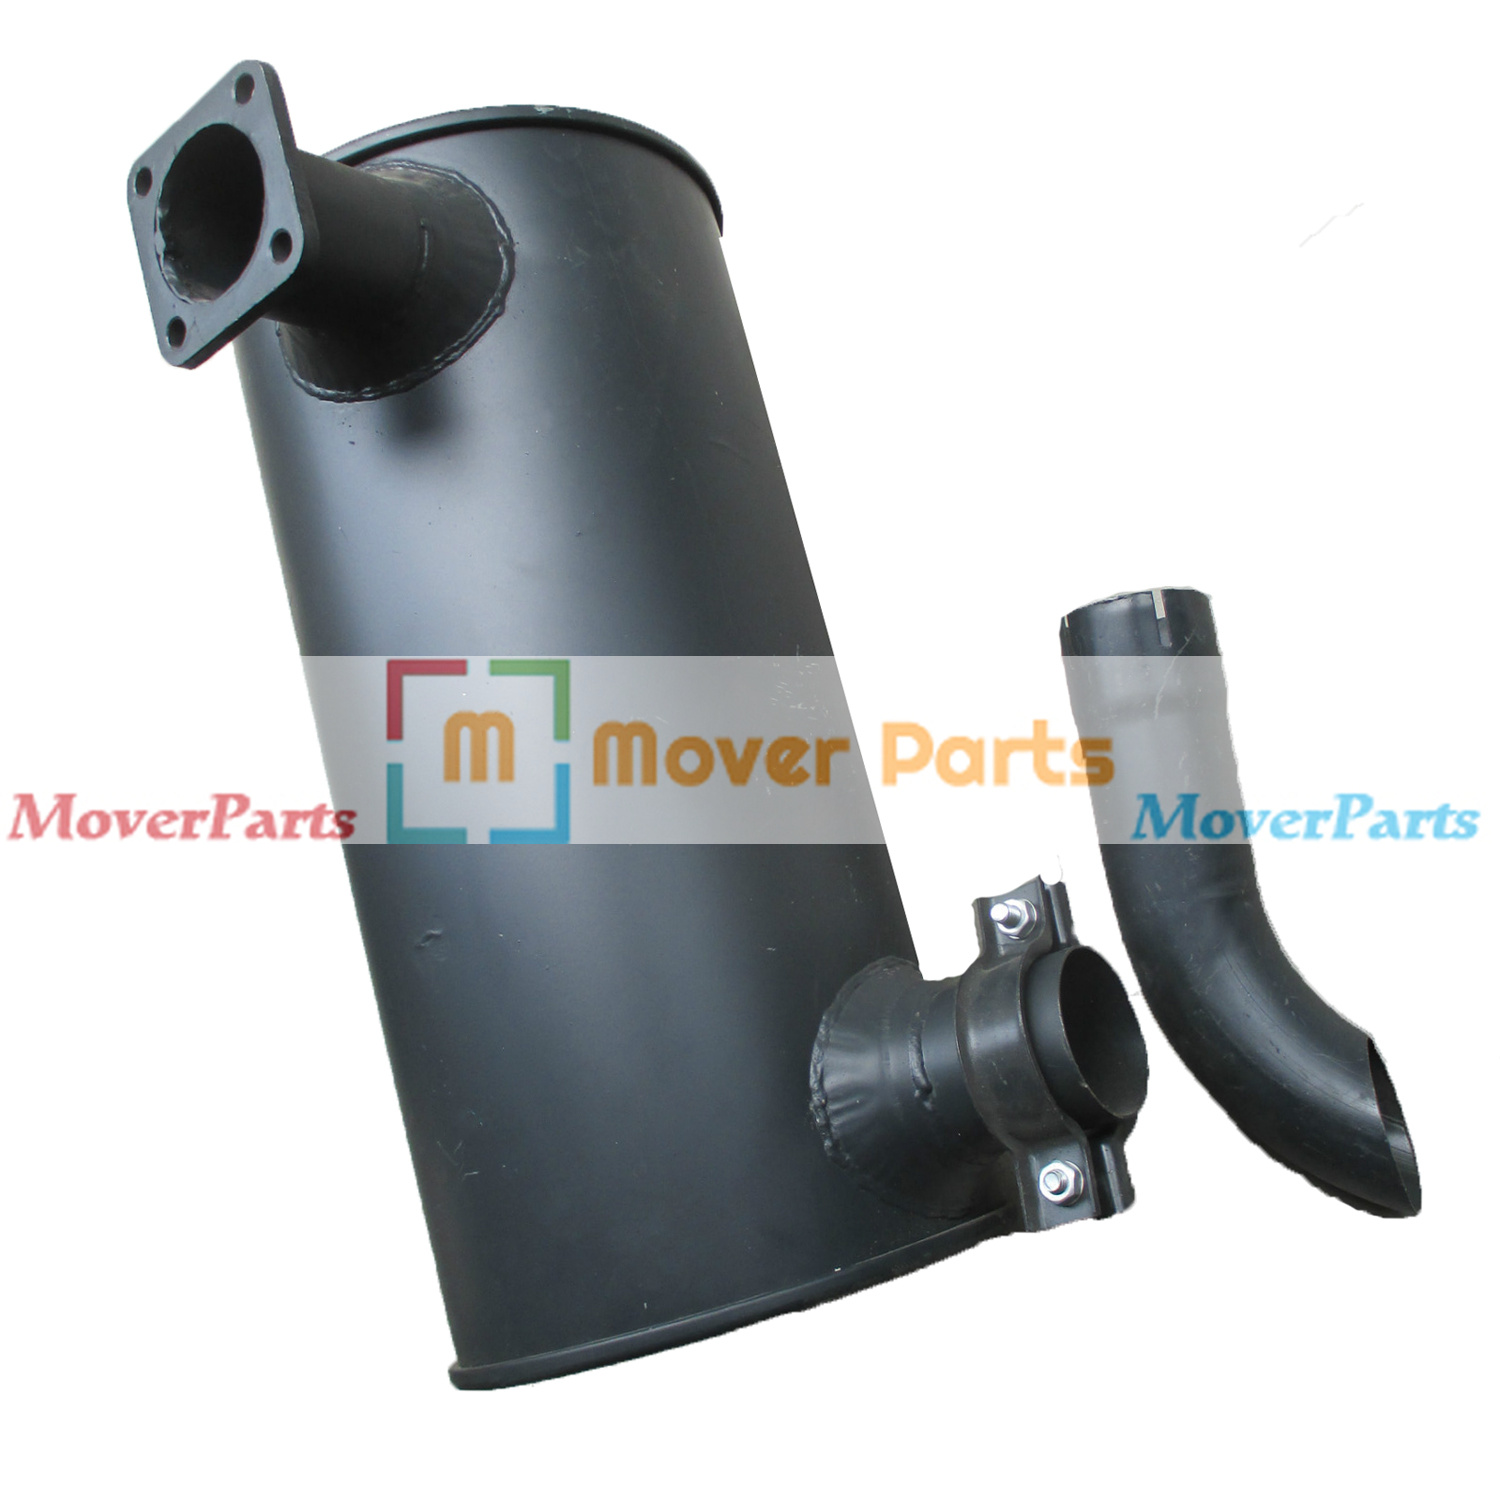 Details about Engine 6BT5 9 Muffler Silencer For Hyundai Excavator R220-5